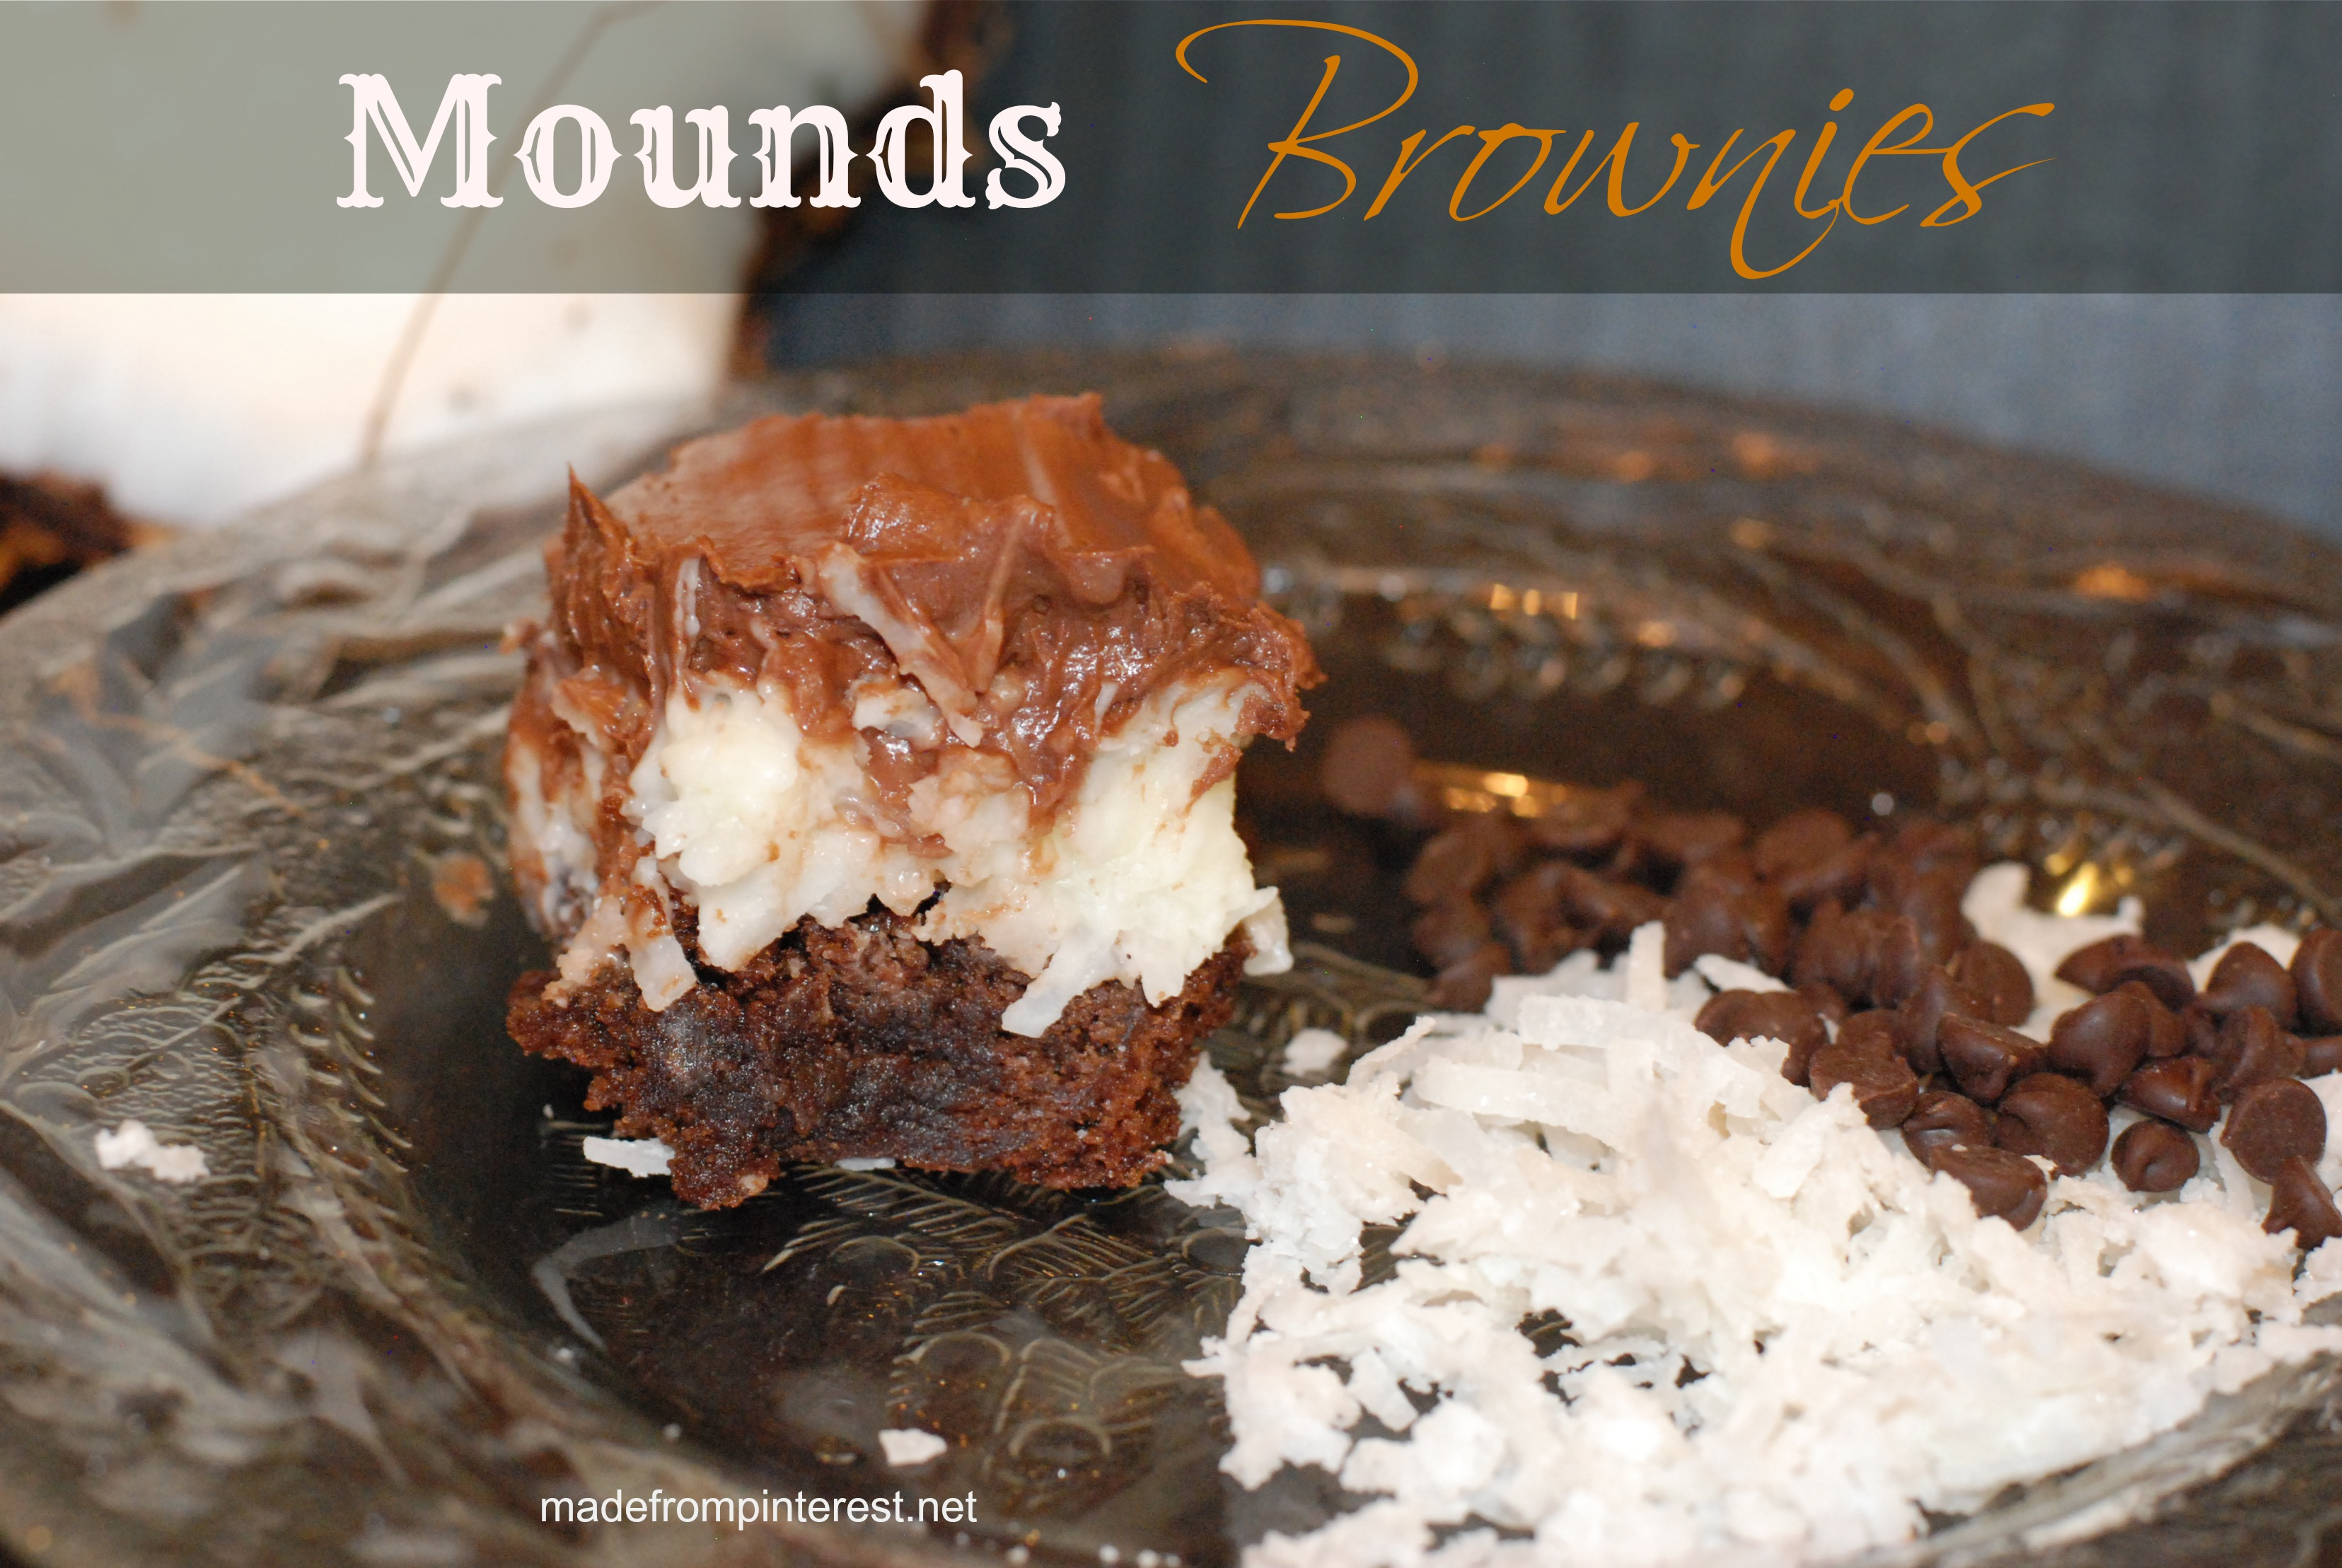 Sometimes you feel like a nut. Sometimes you don't. Nut or no nut, these brownies will make you want to sing! madefrompinterest.net